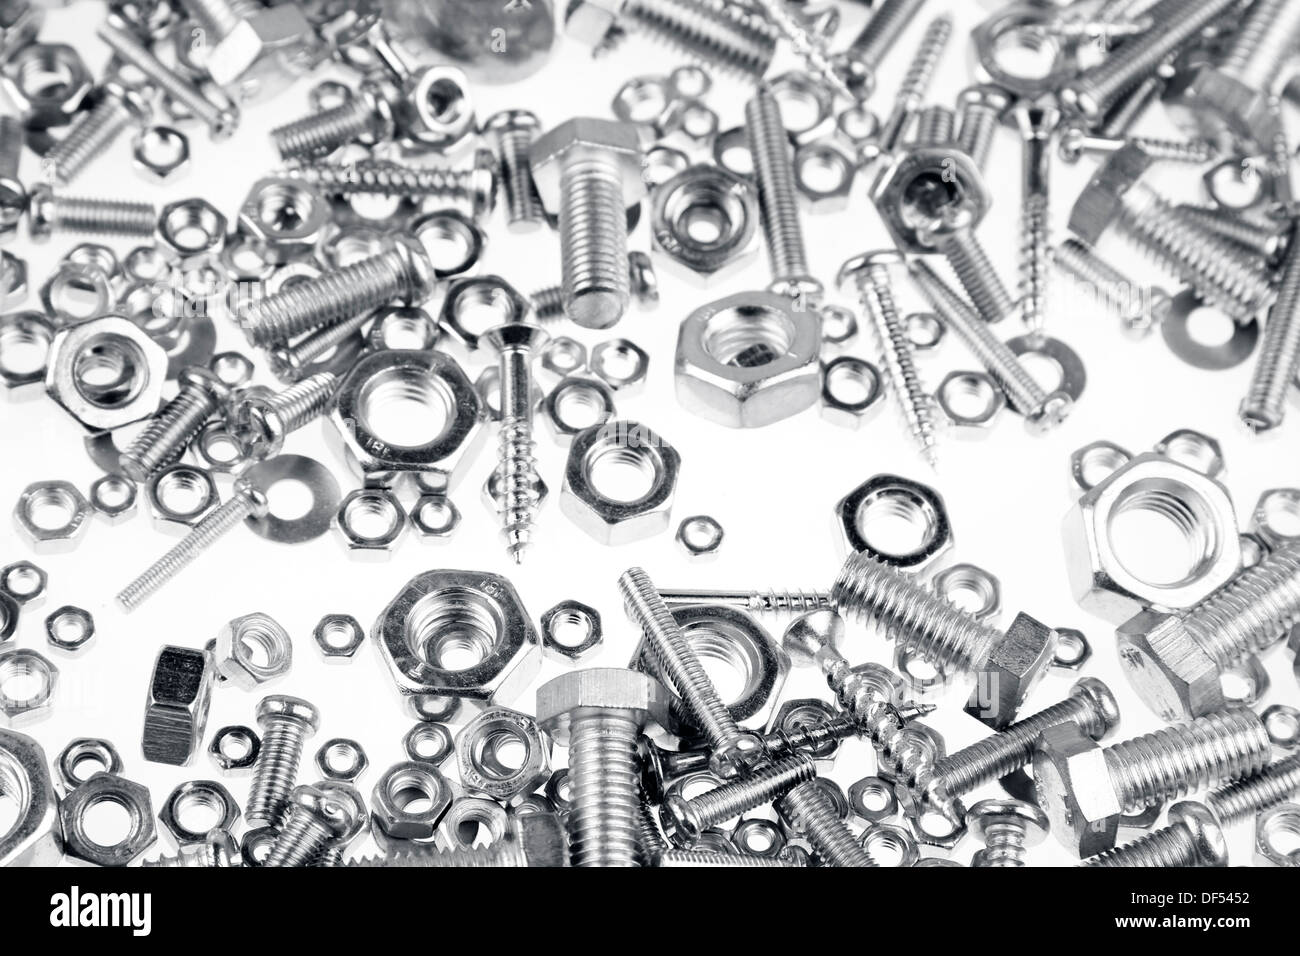 Assorted nuts, bolts and screws closeup Stock Photo